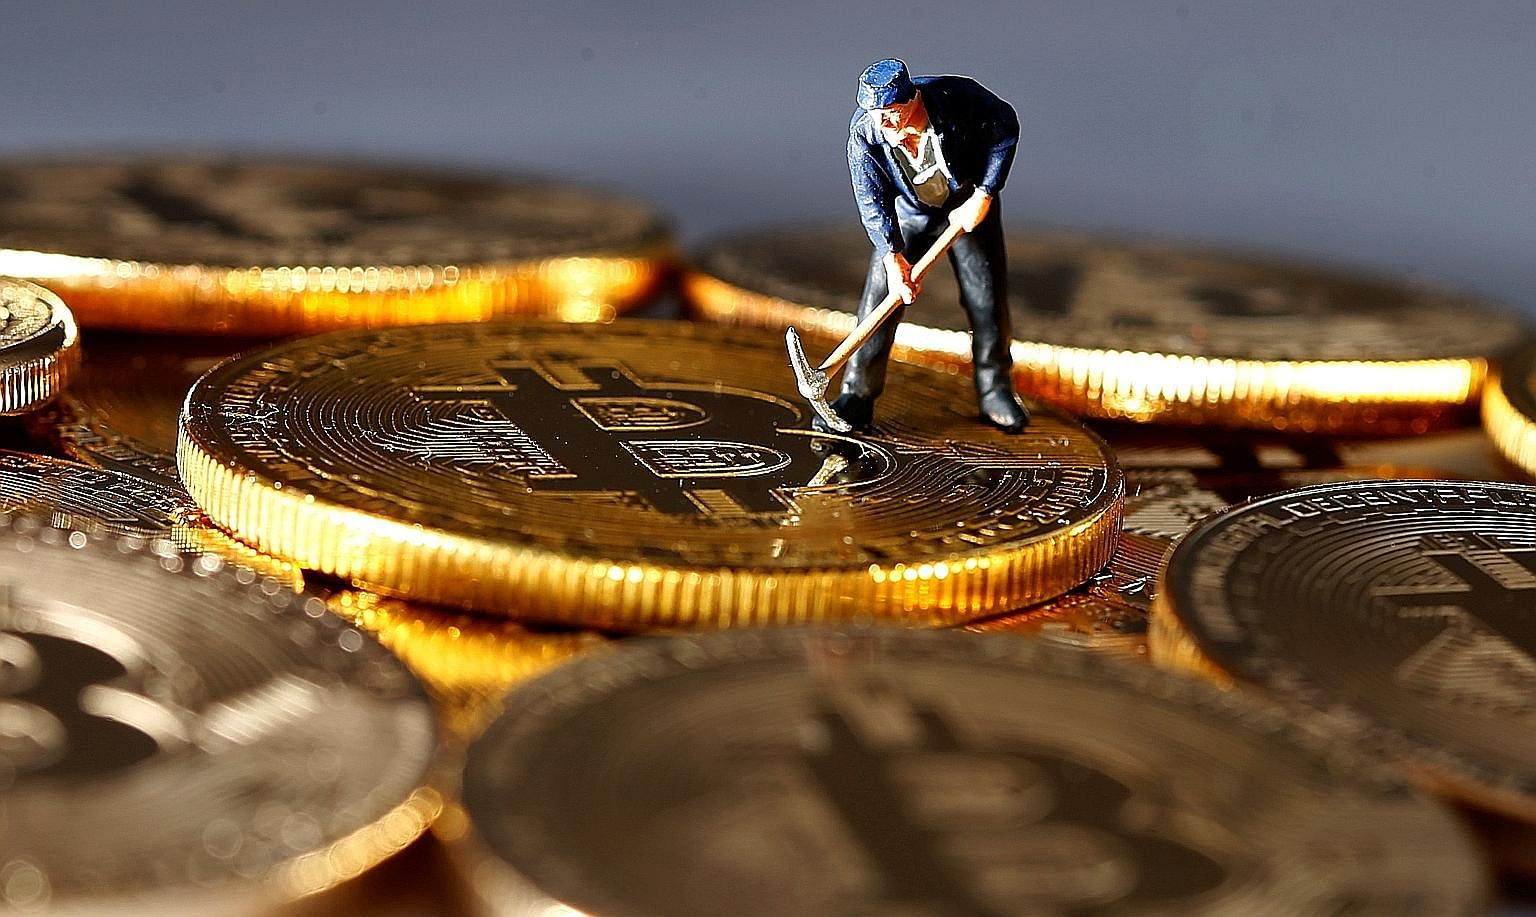 In South Korea, the craze for cryptocurrencies has drawn about three million investors, and the country accounts for 20 per cent to 25 per cent of the global transactions of cybermoney.